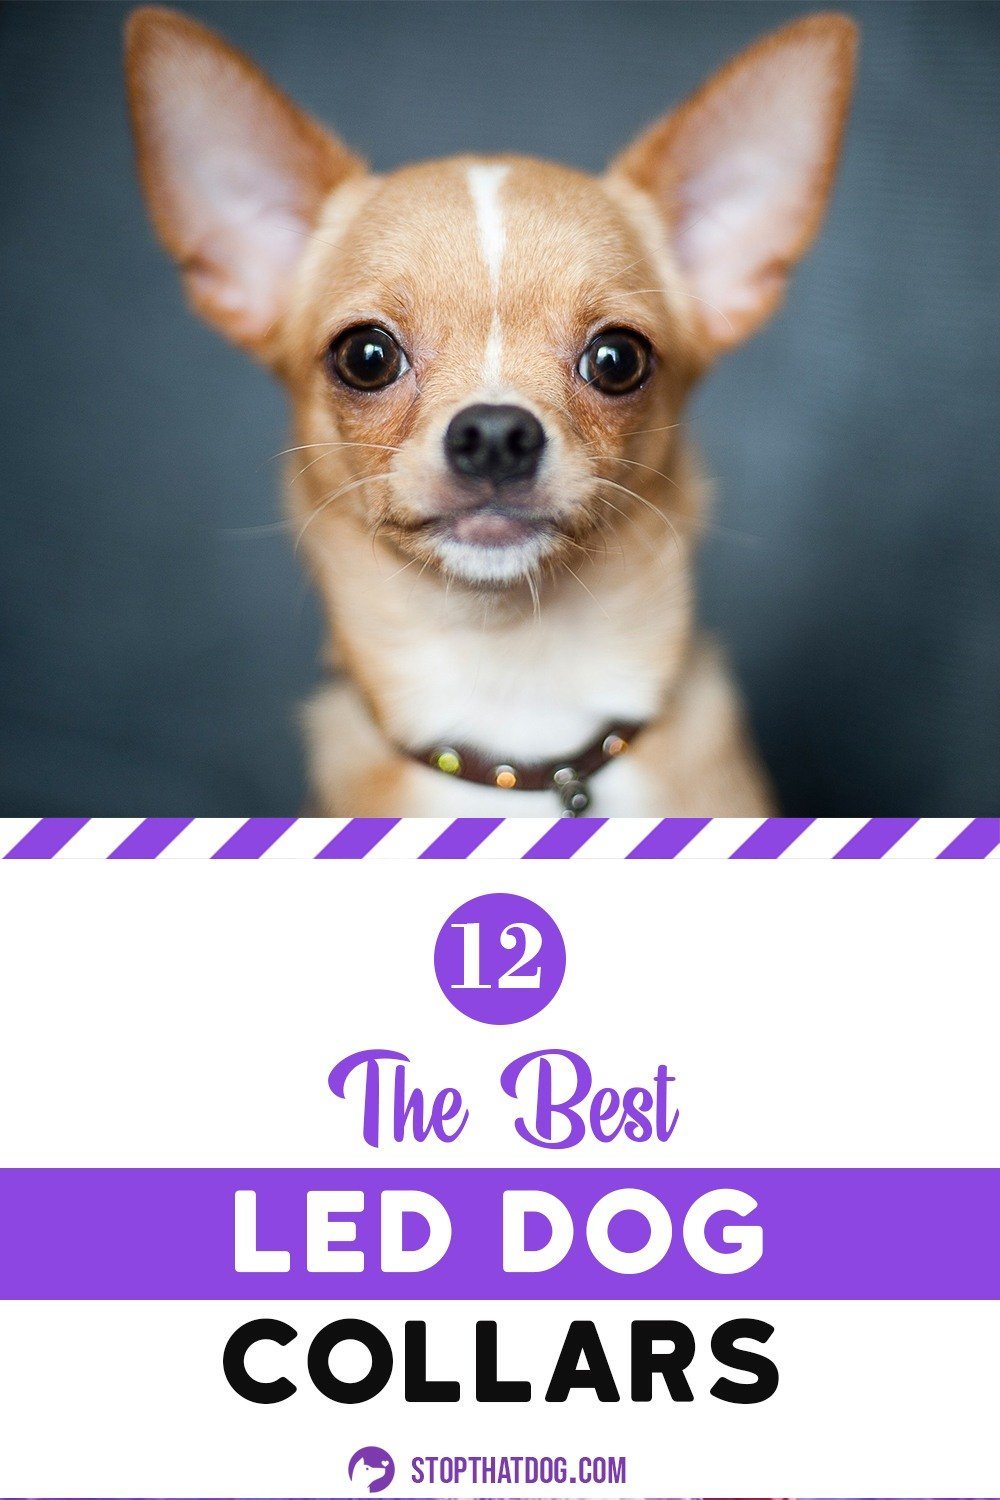 The Best LED Dog Collars - Our In-Depth Guide (2020)